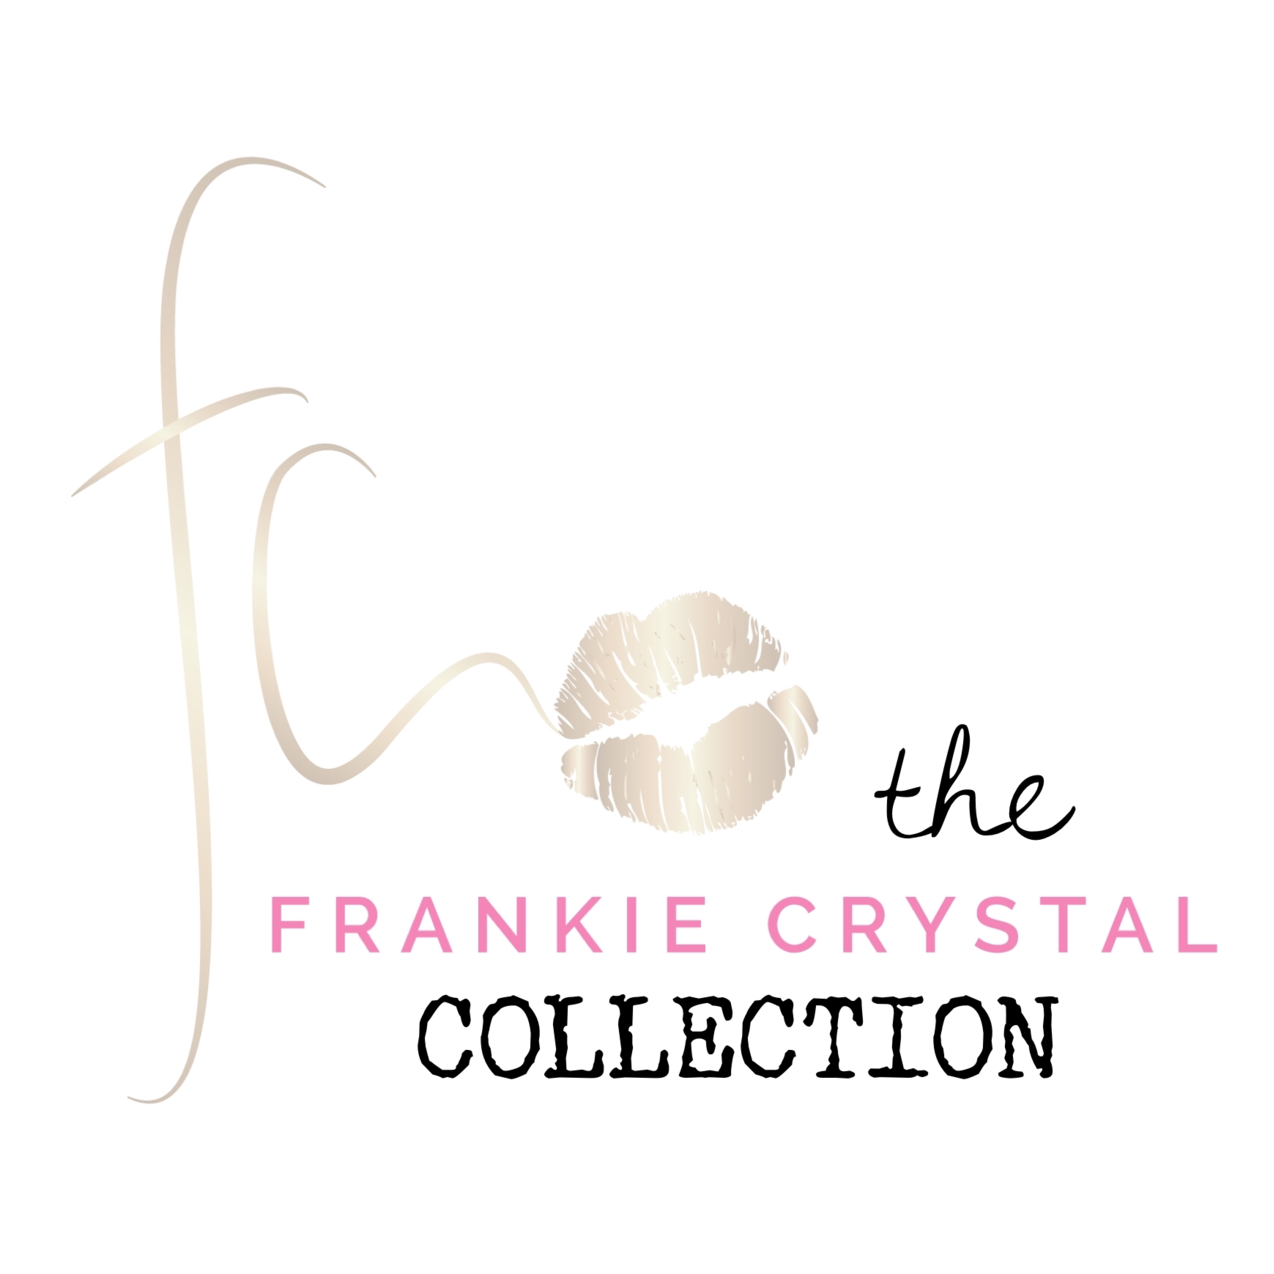 The Frankie Crystal Collection